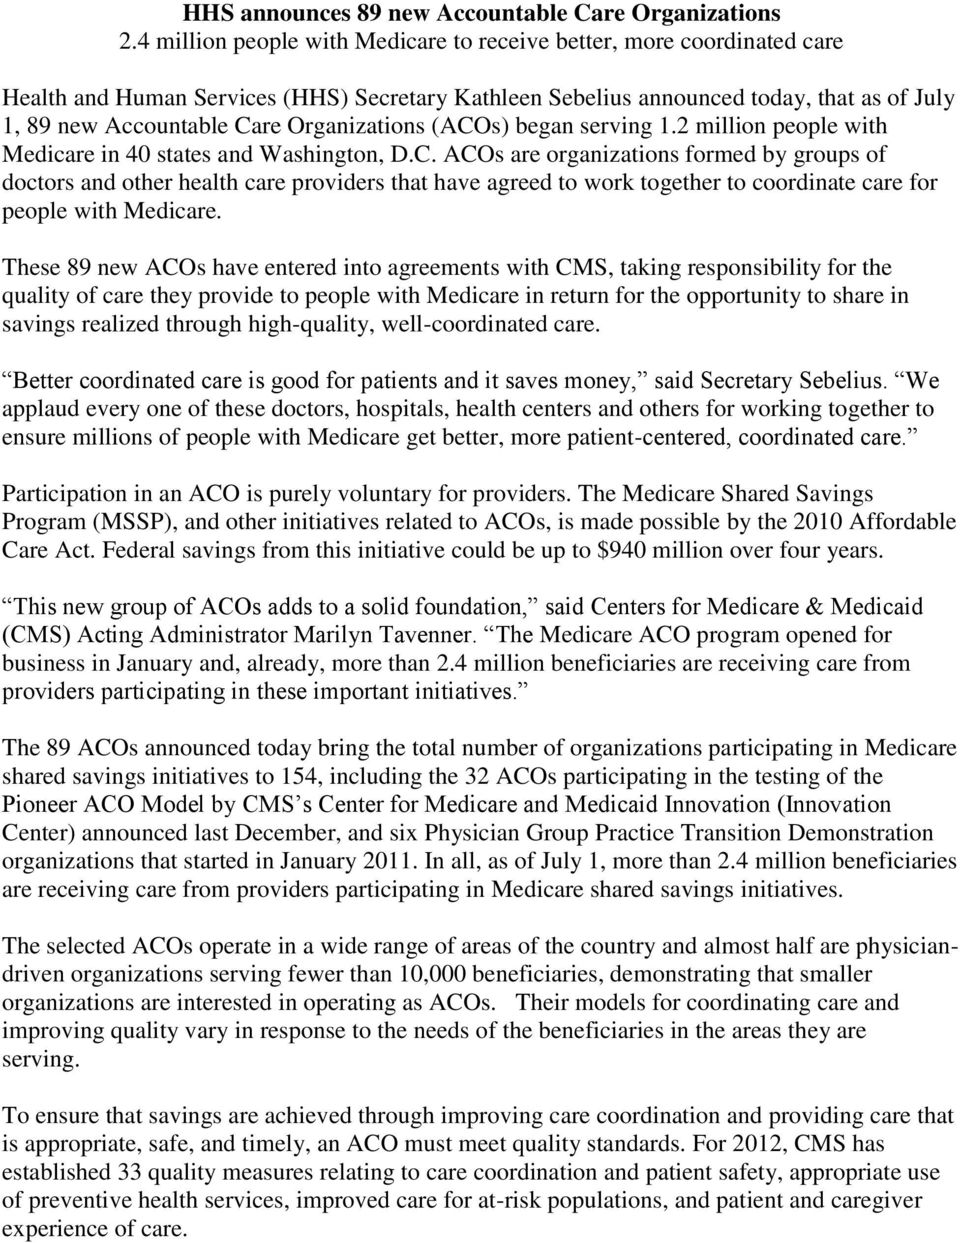 Organizations (ACOs) began serving 1.2 million people with Medicare in 40 states and Washington, D.C. ACOs are organizations formed by groups of doctors and other health care providers that have agreed to work together to coordinate care for people with Medicare.